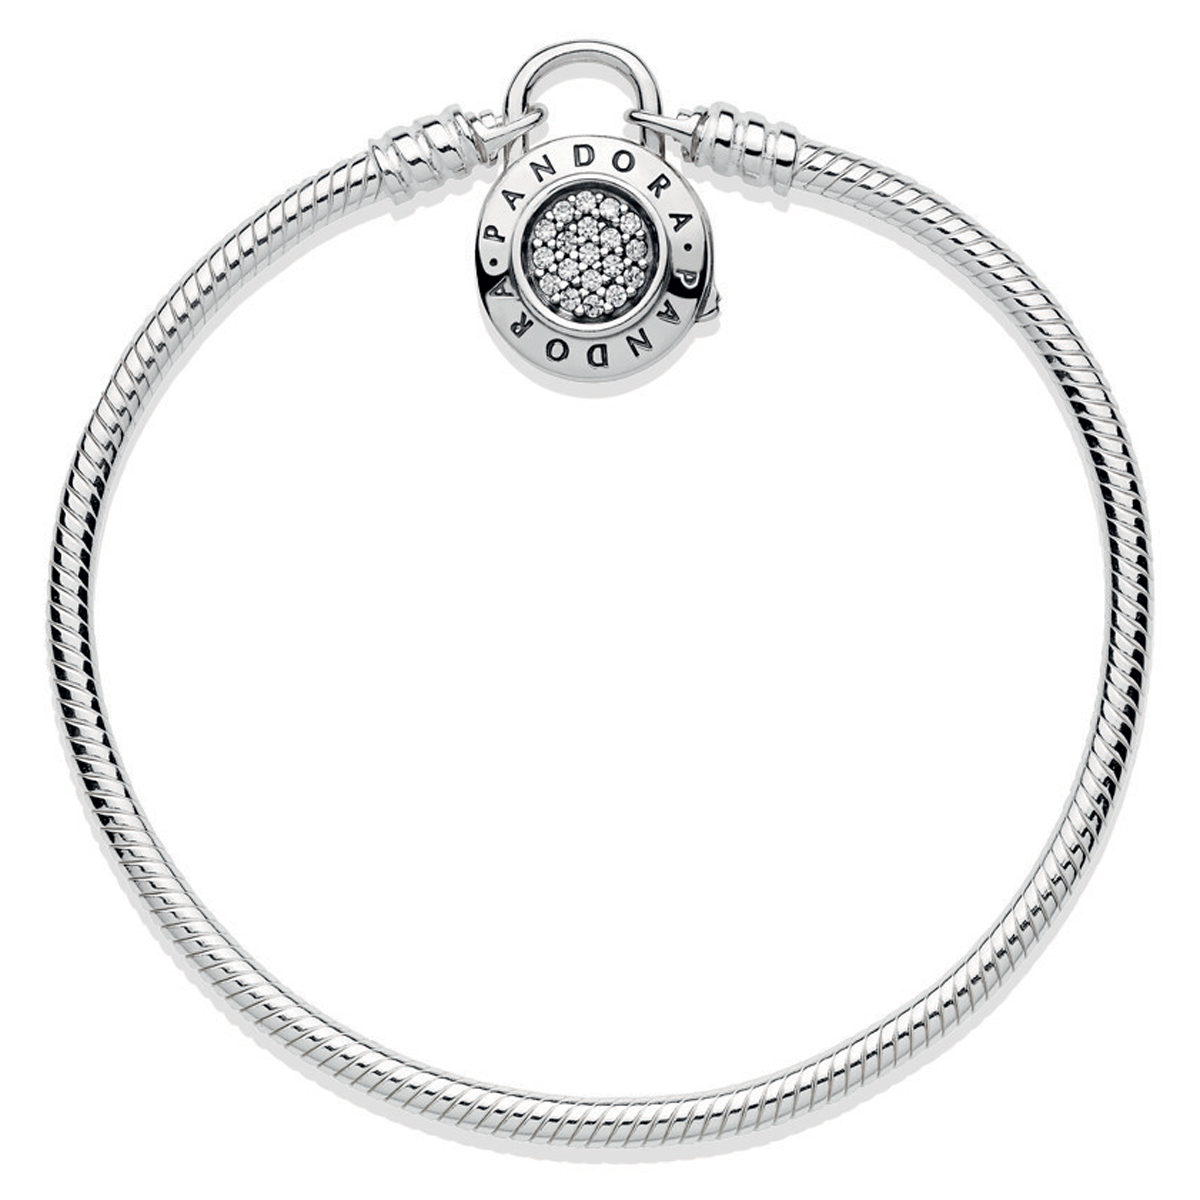 How Much Are Charm Bracelets: How Much Does It Cost For A Pandora Bracelet